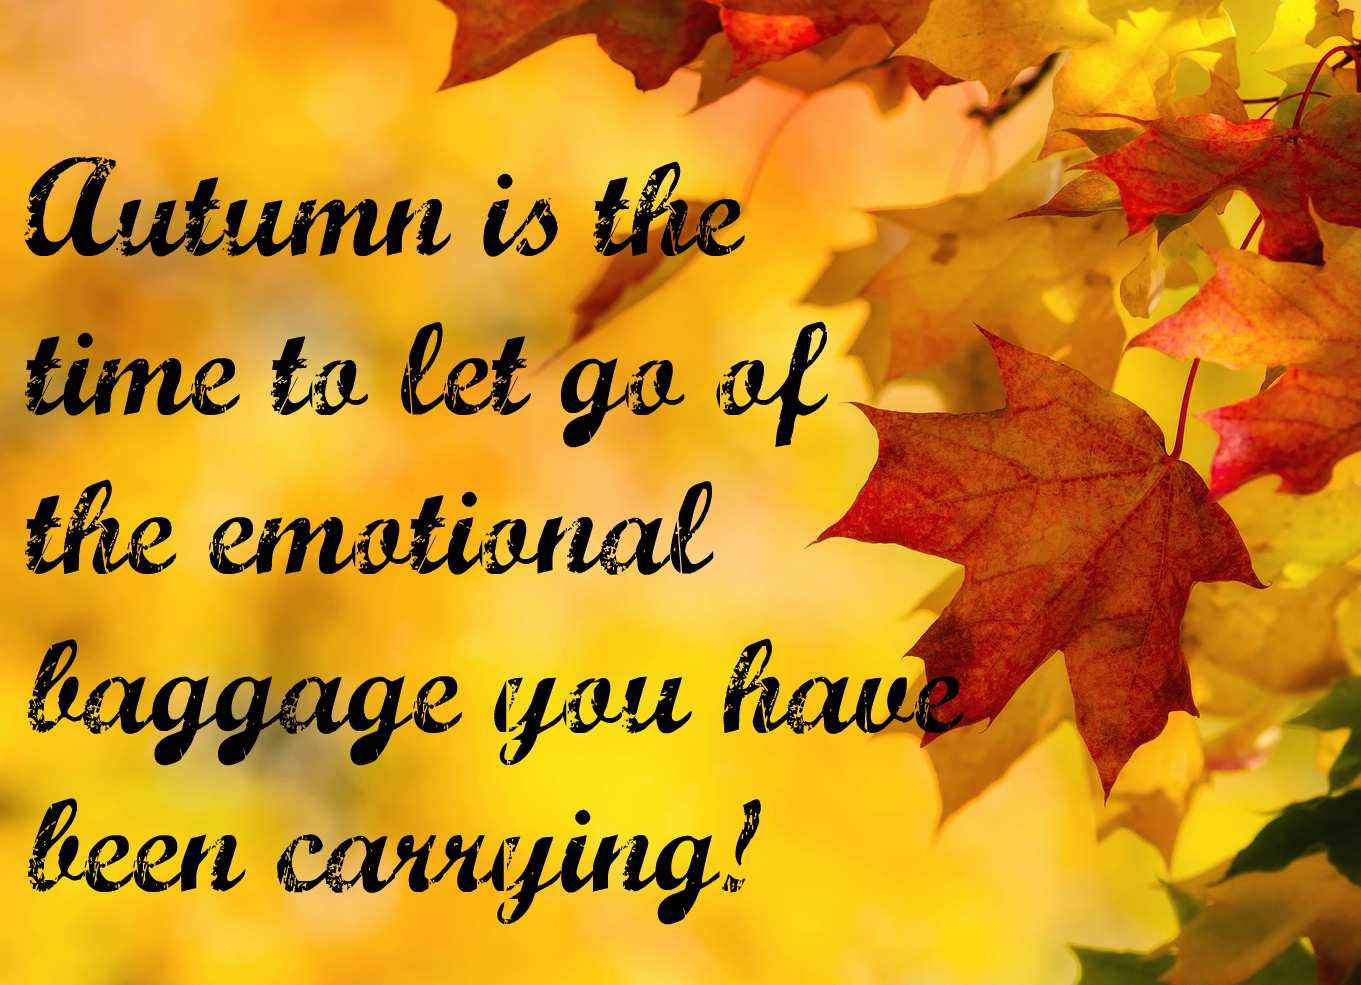 autumn saying